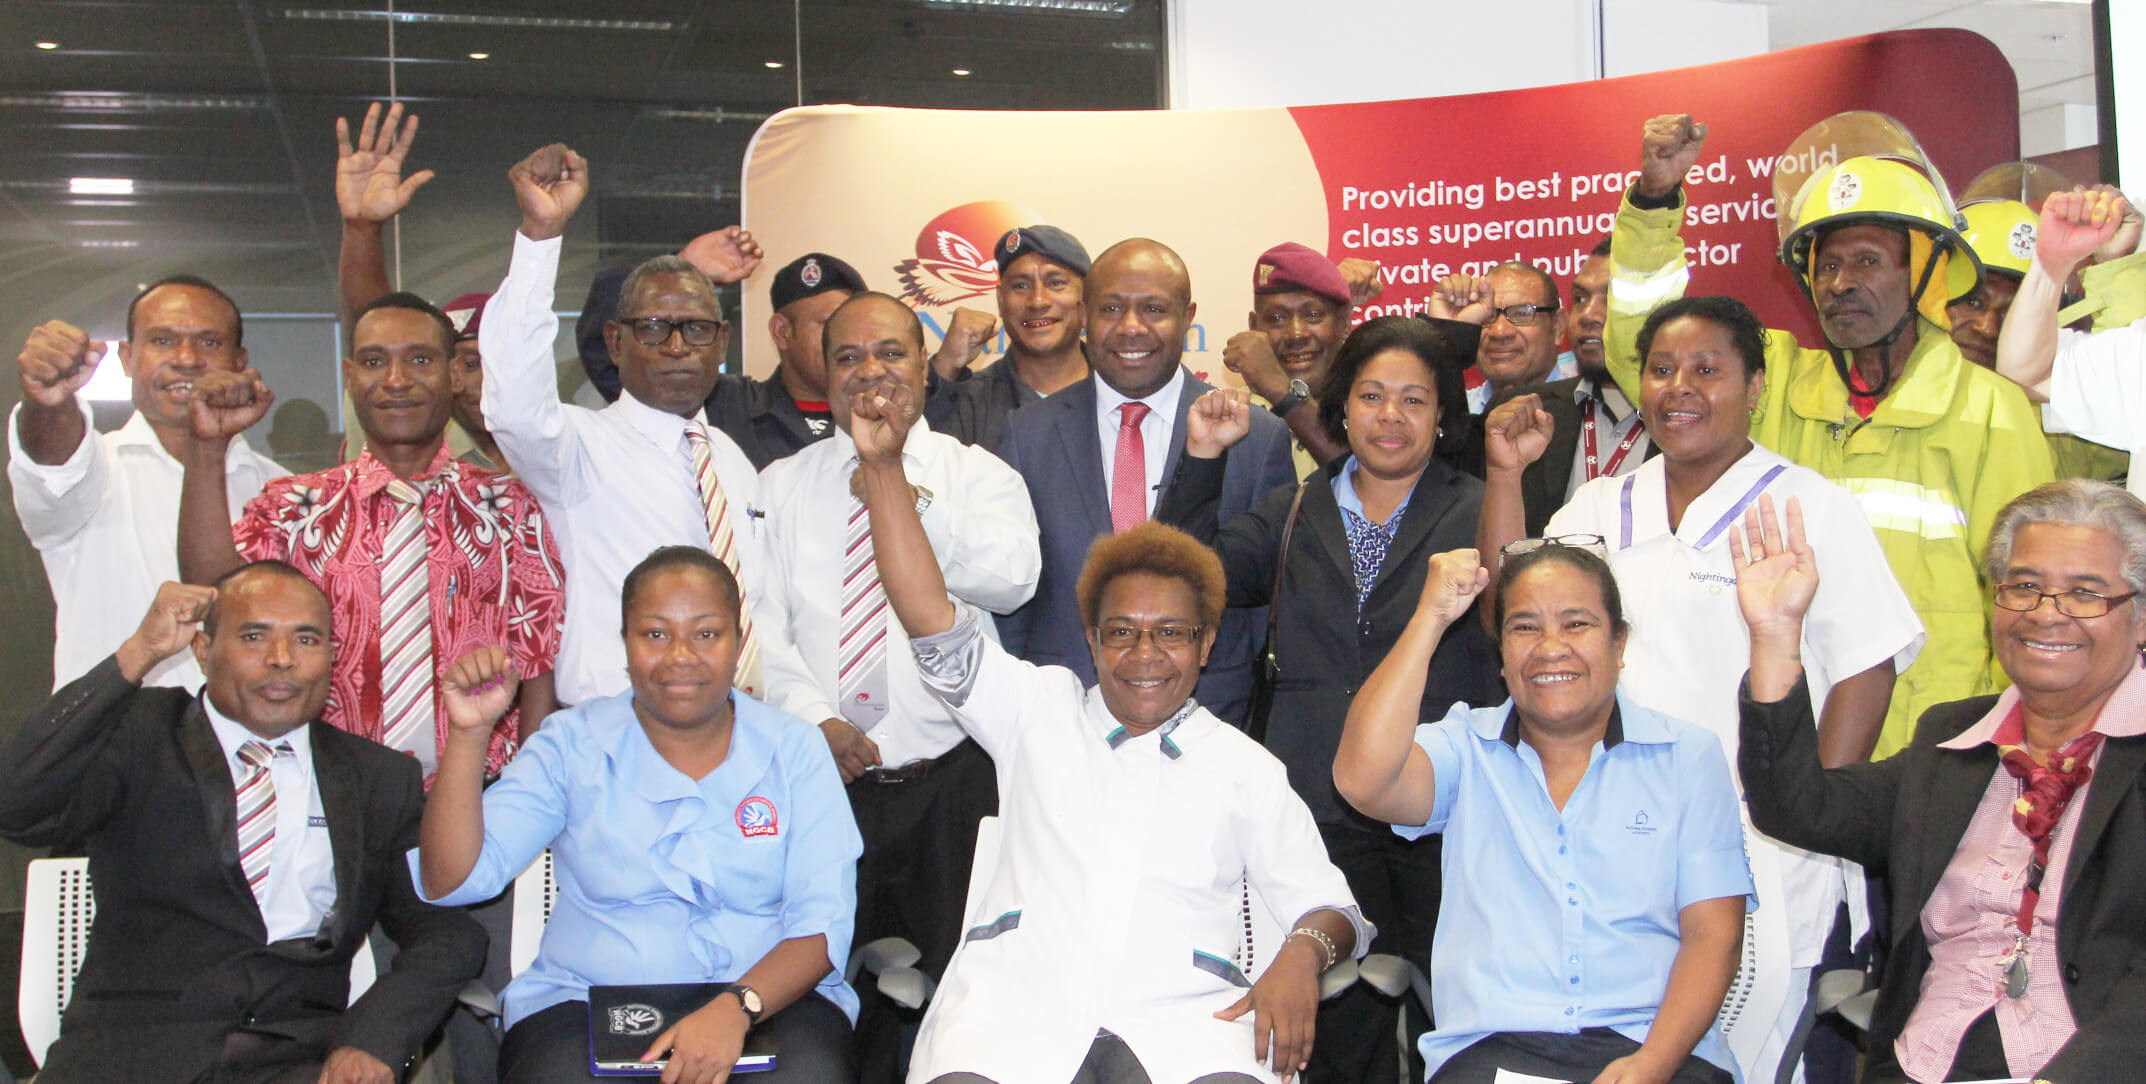 Chairman NSL Mr Anthony Smare with members of the Fund